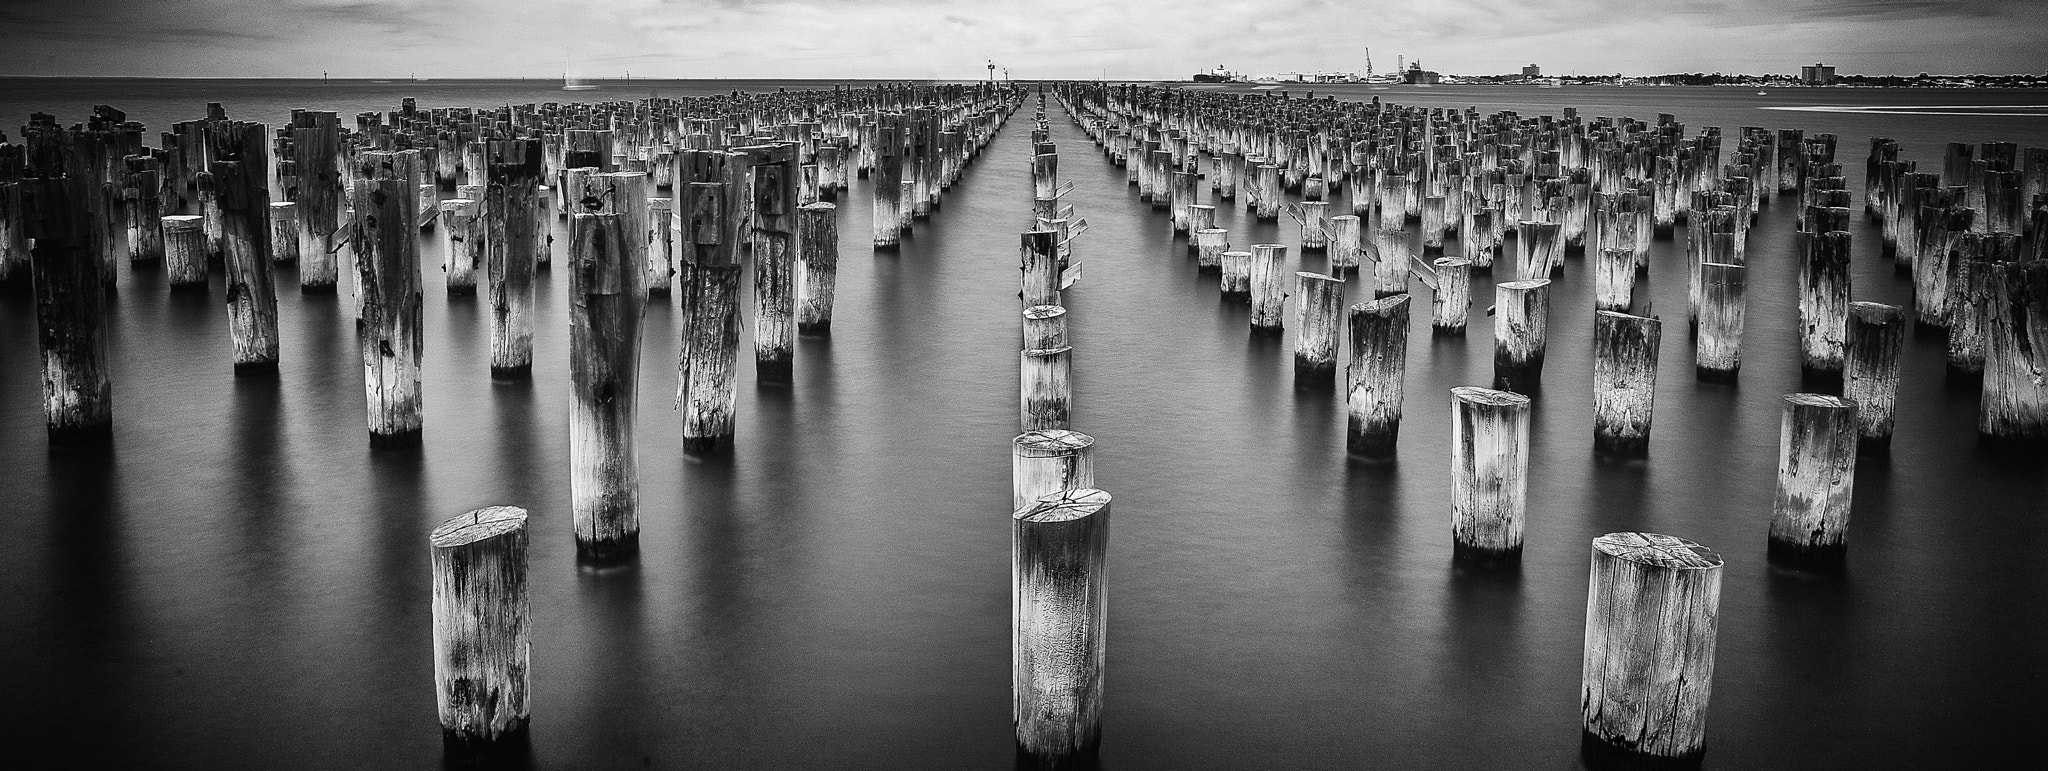 Photograph Princes Pier 1 by Margaret Morgan on 500px